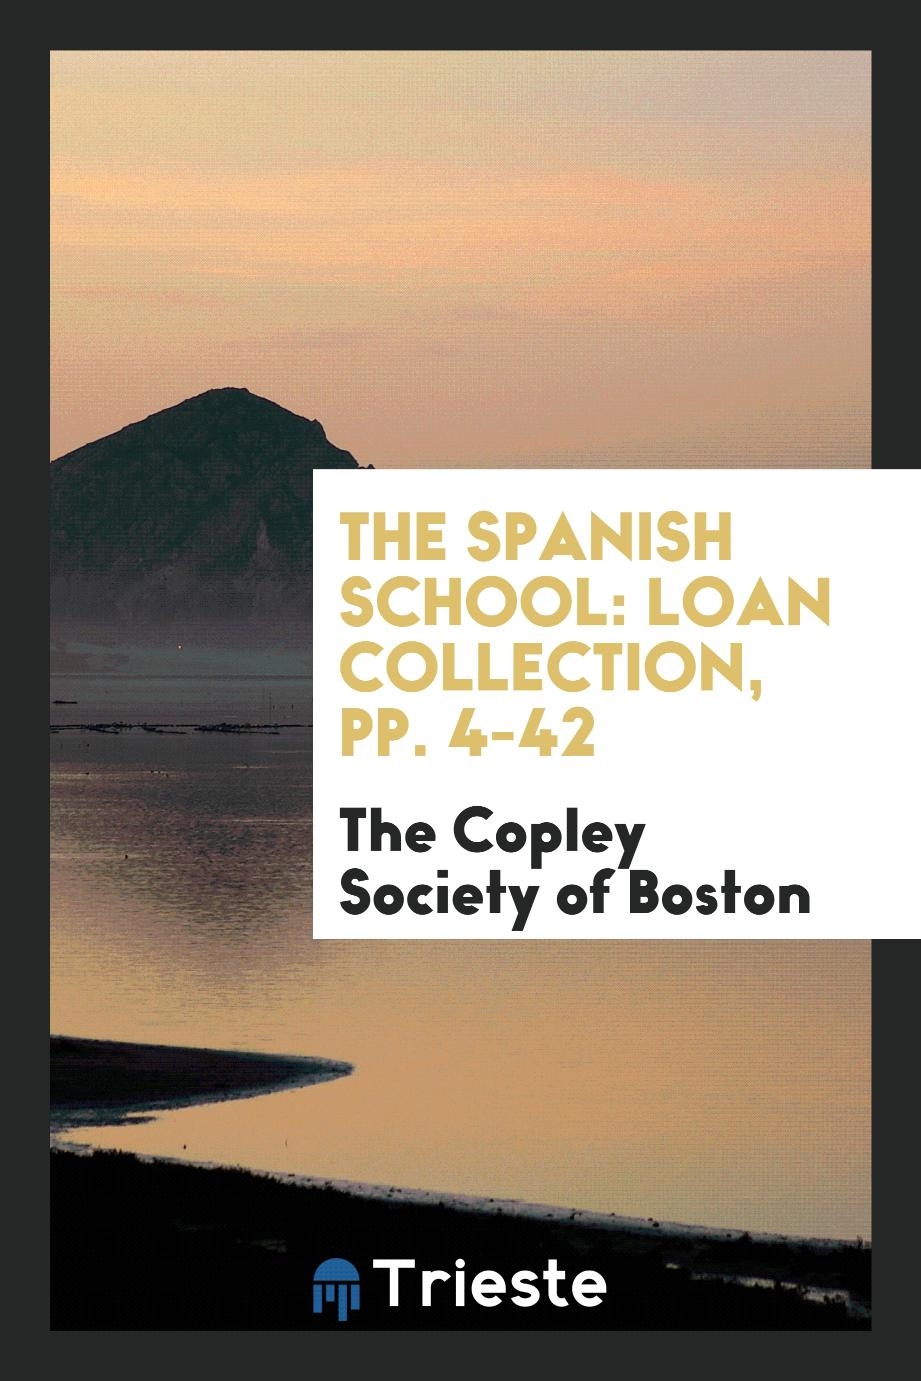 The Spanish School: Loan Collection, pp. 4-42